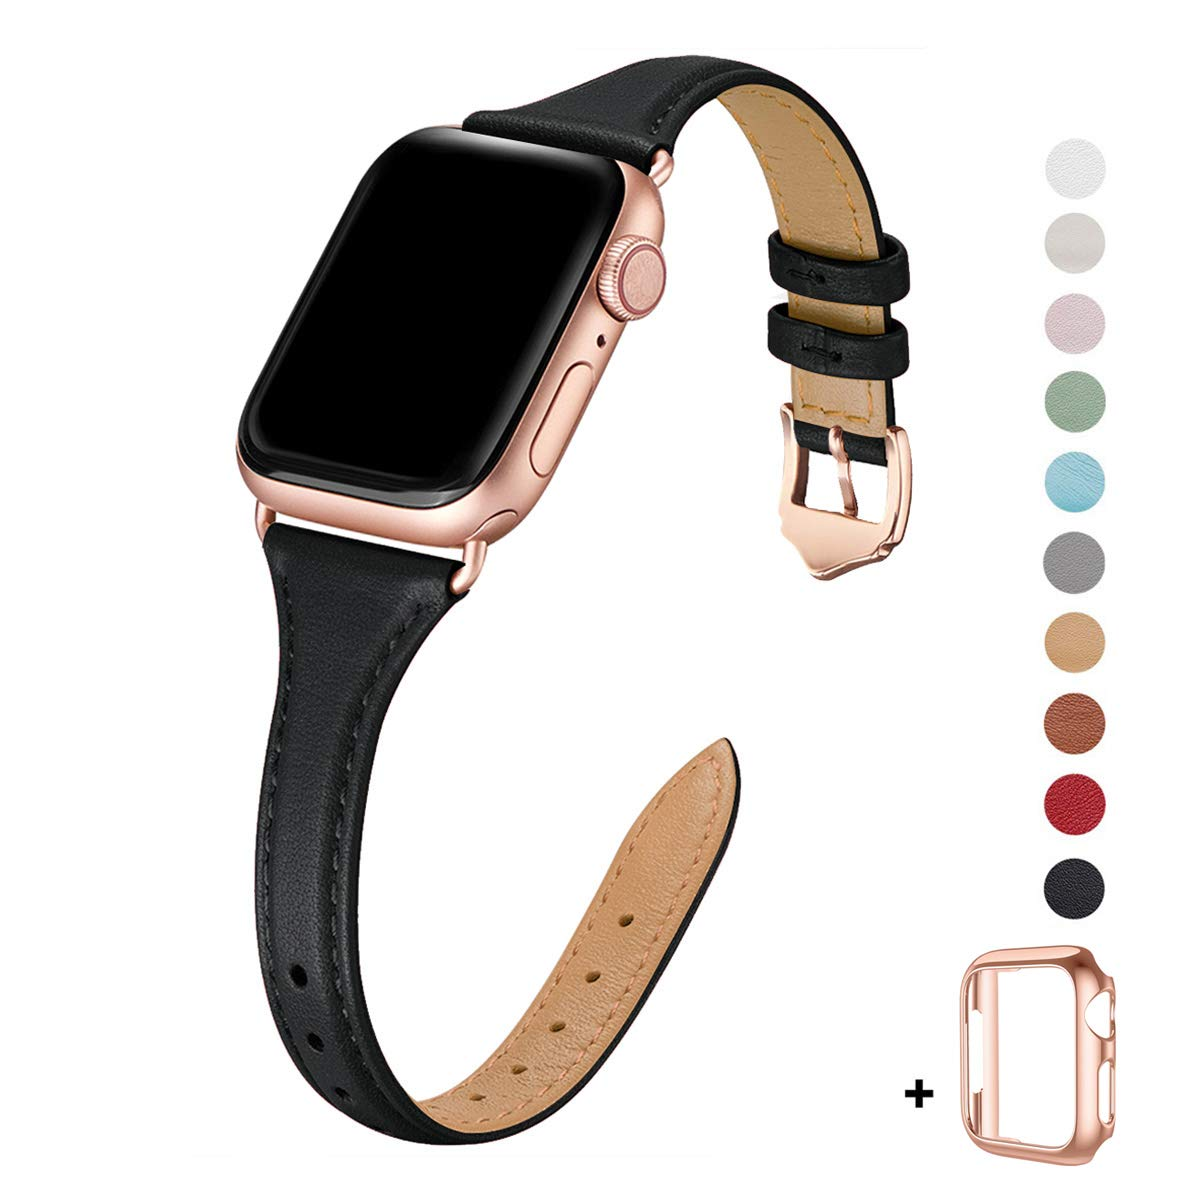 WFEAGL Leather Bands Compatible with Apple Watch 38mm 40mm 42mm 44mm, Top Grain Leather Band Slim & Thin Wristband for iWatch Series 5 & Series 4/3/2/1 (Black Band+Rose Gold Adapter, 38mm 40mm) by WFEAGL